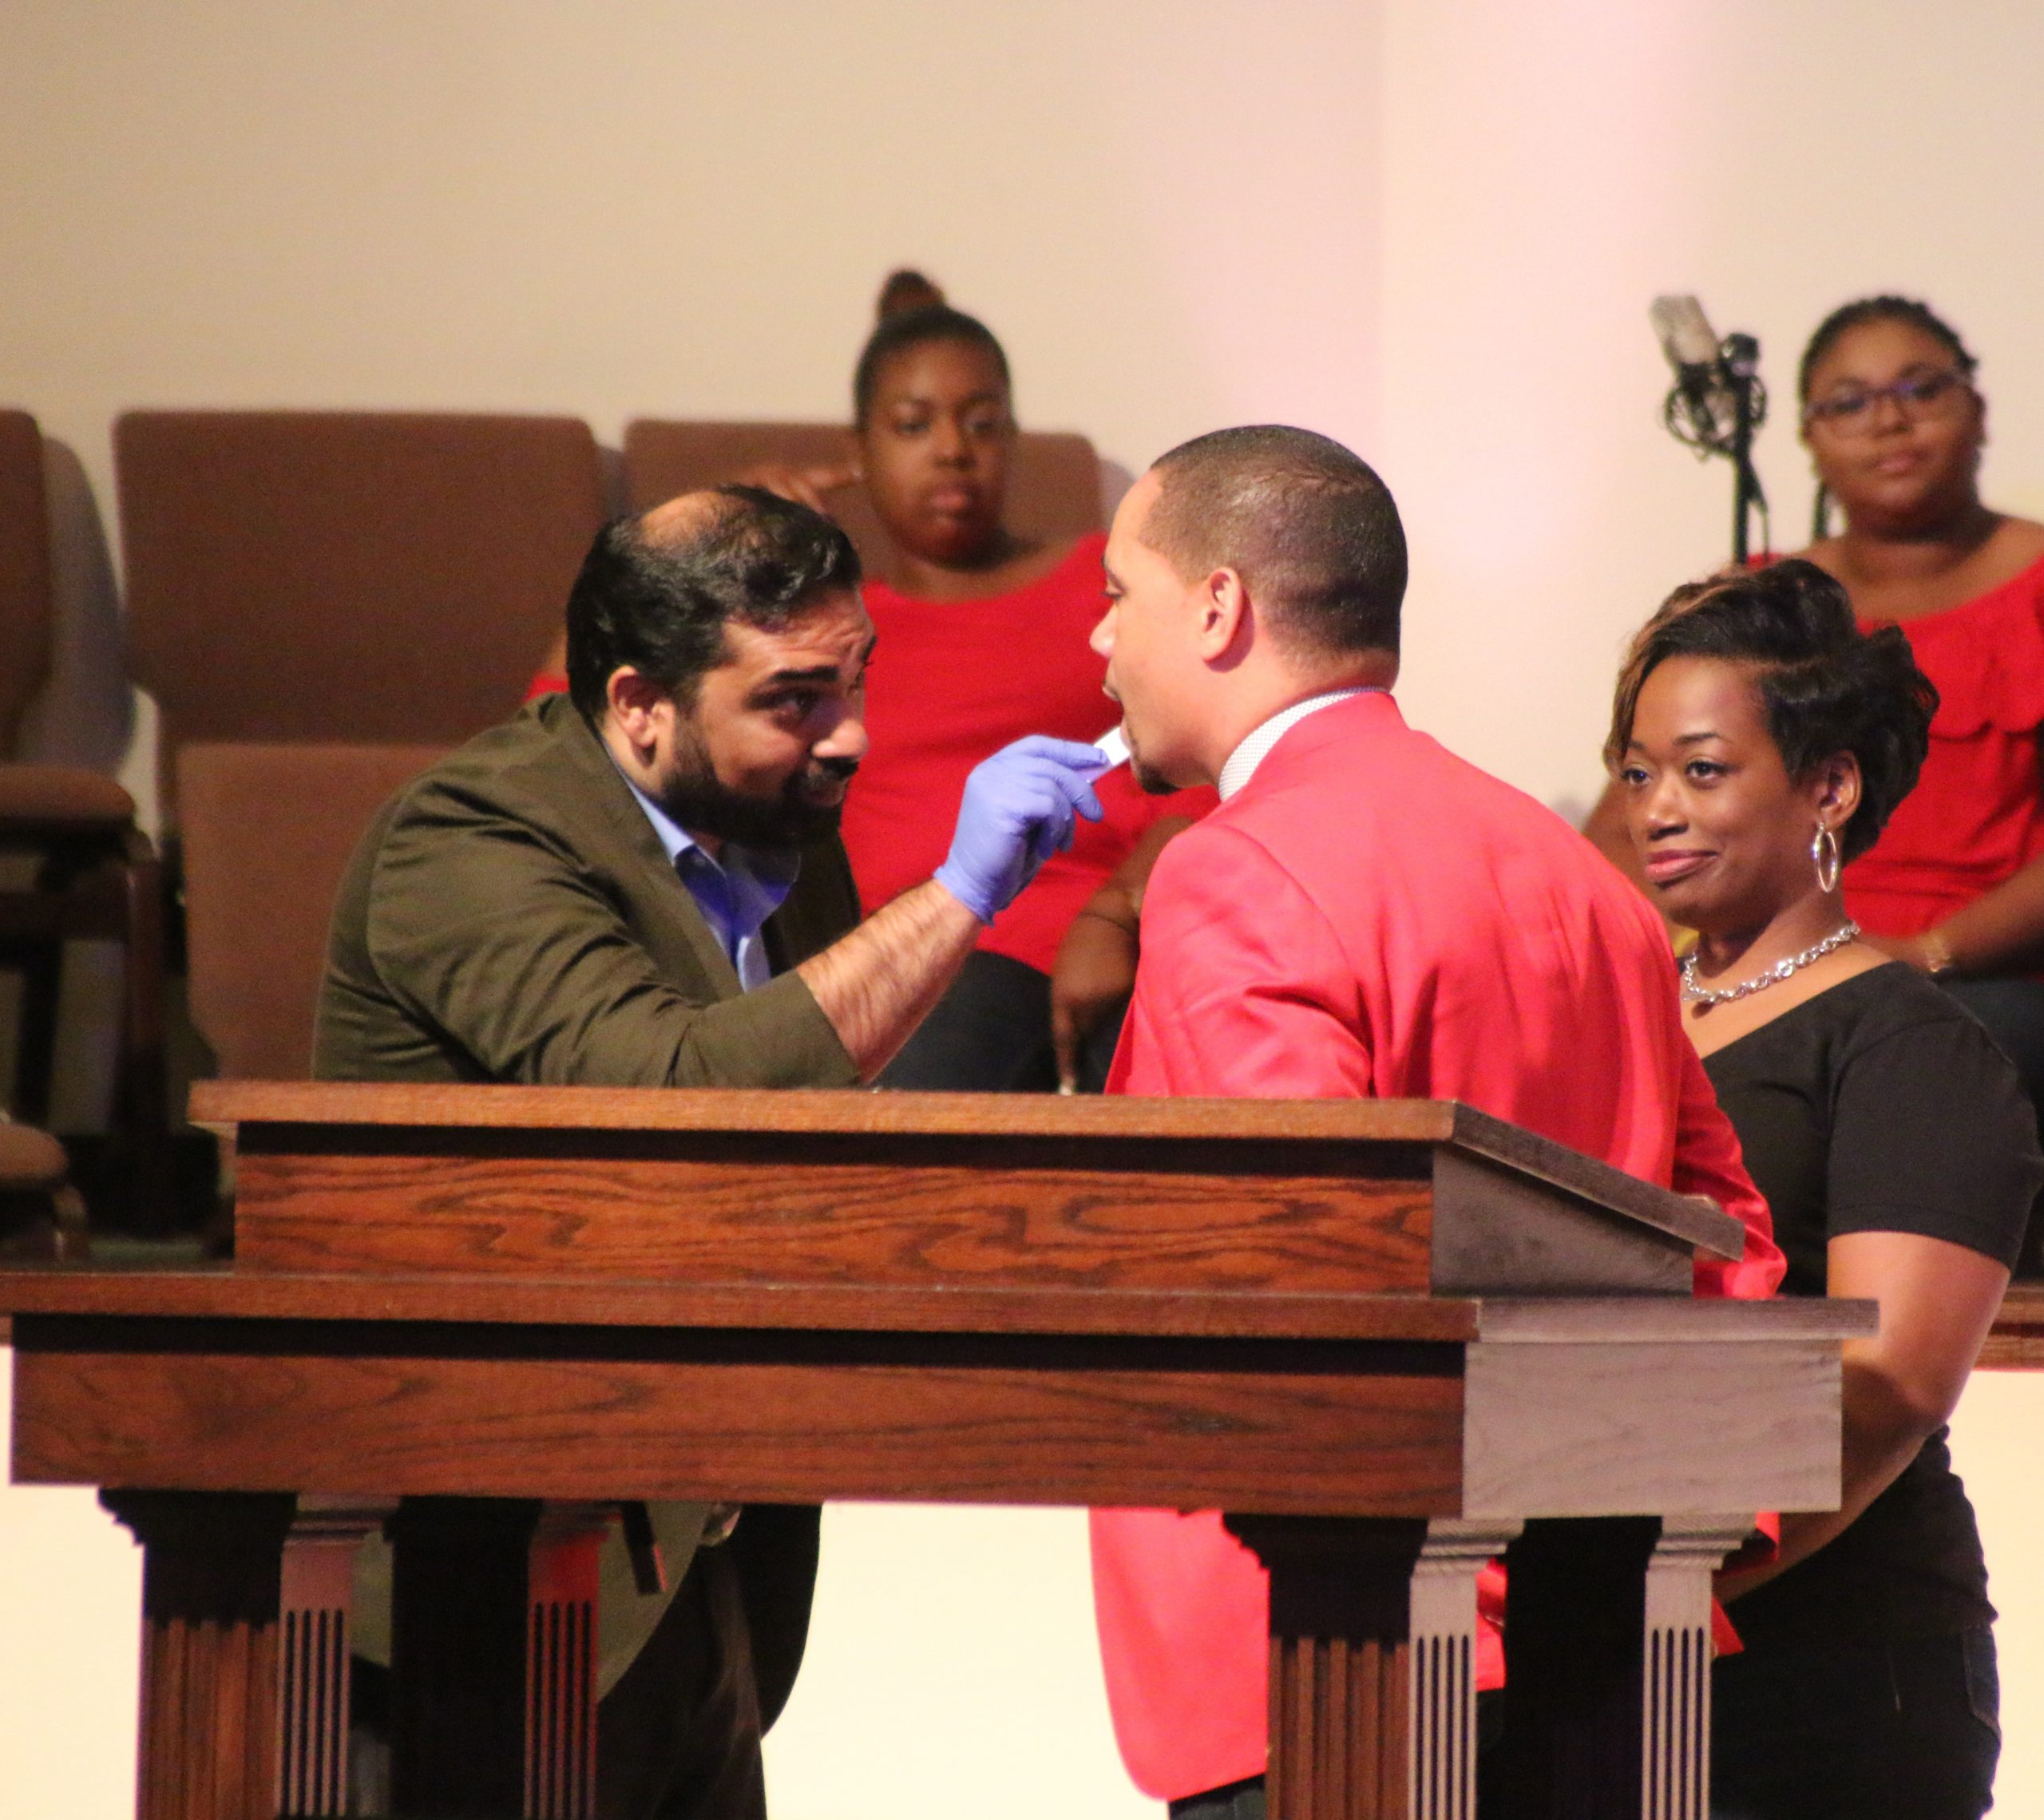 Pastor Faison getting HIV tested at church